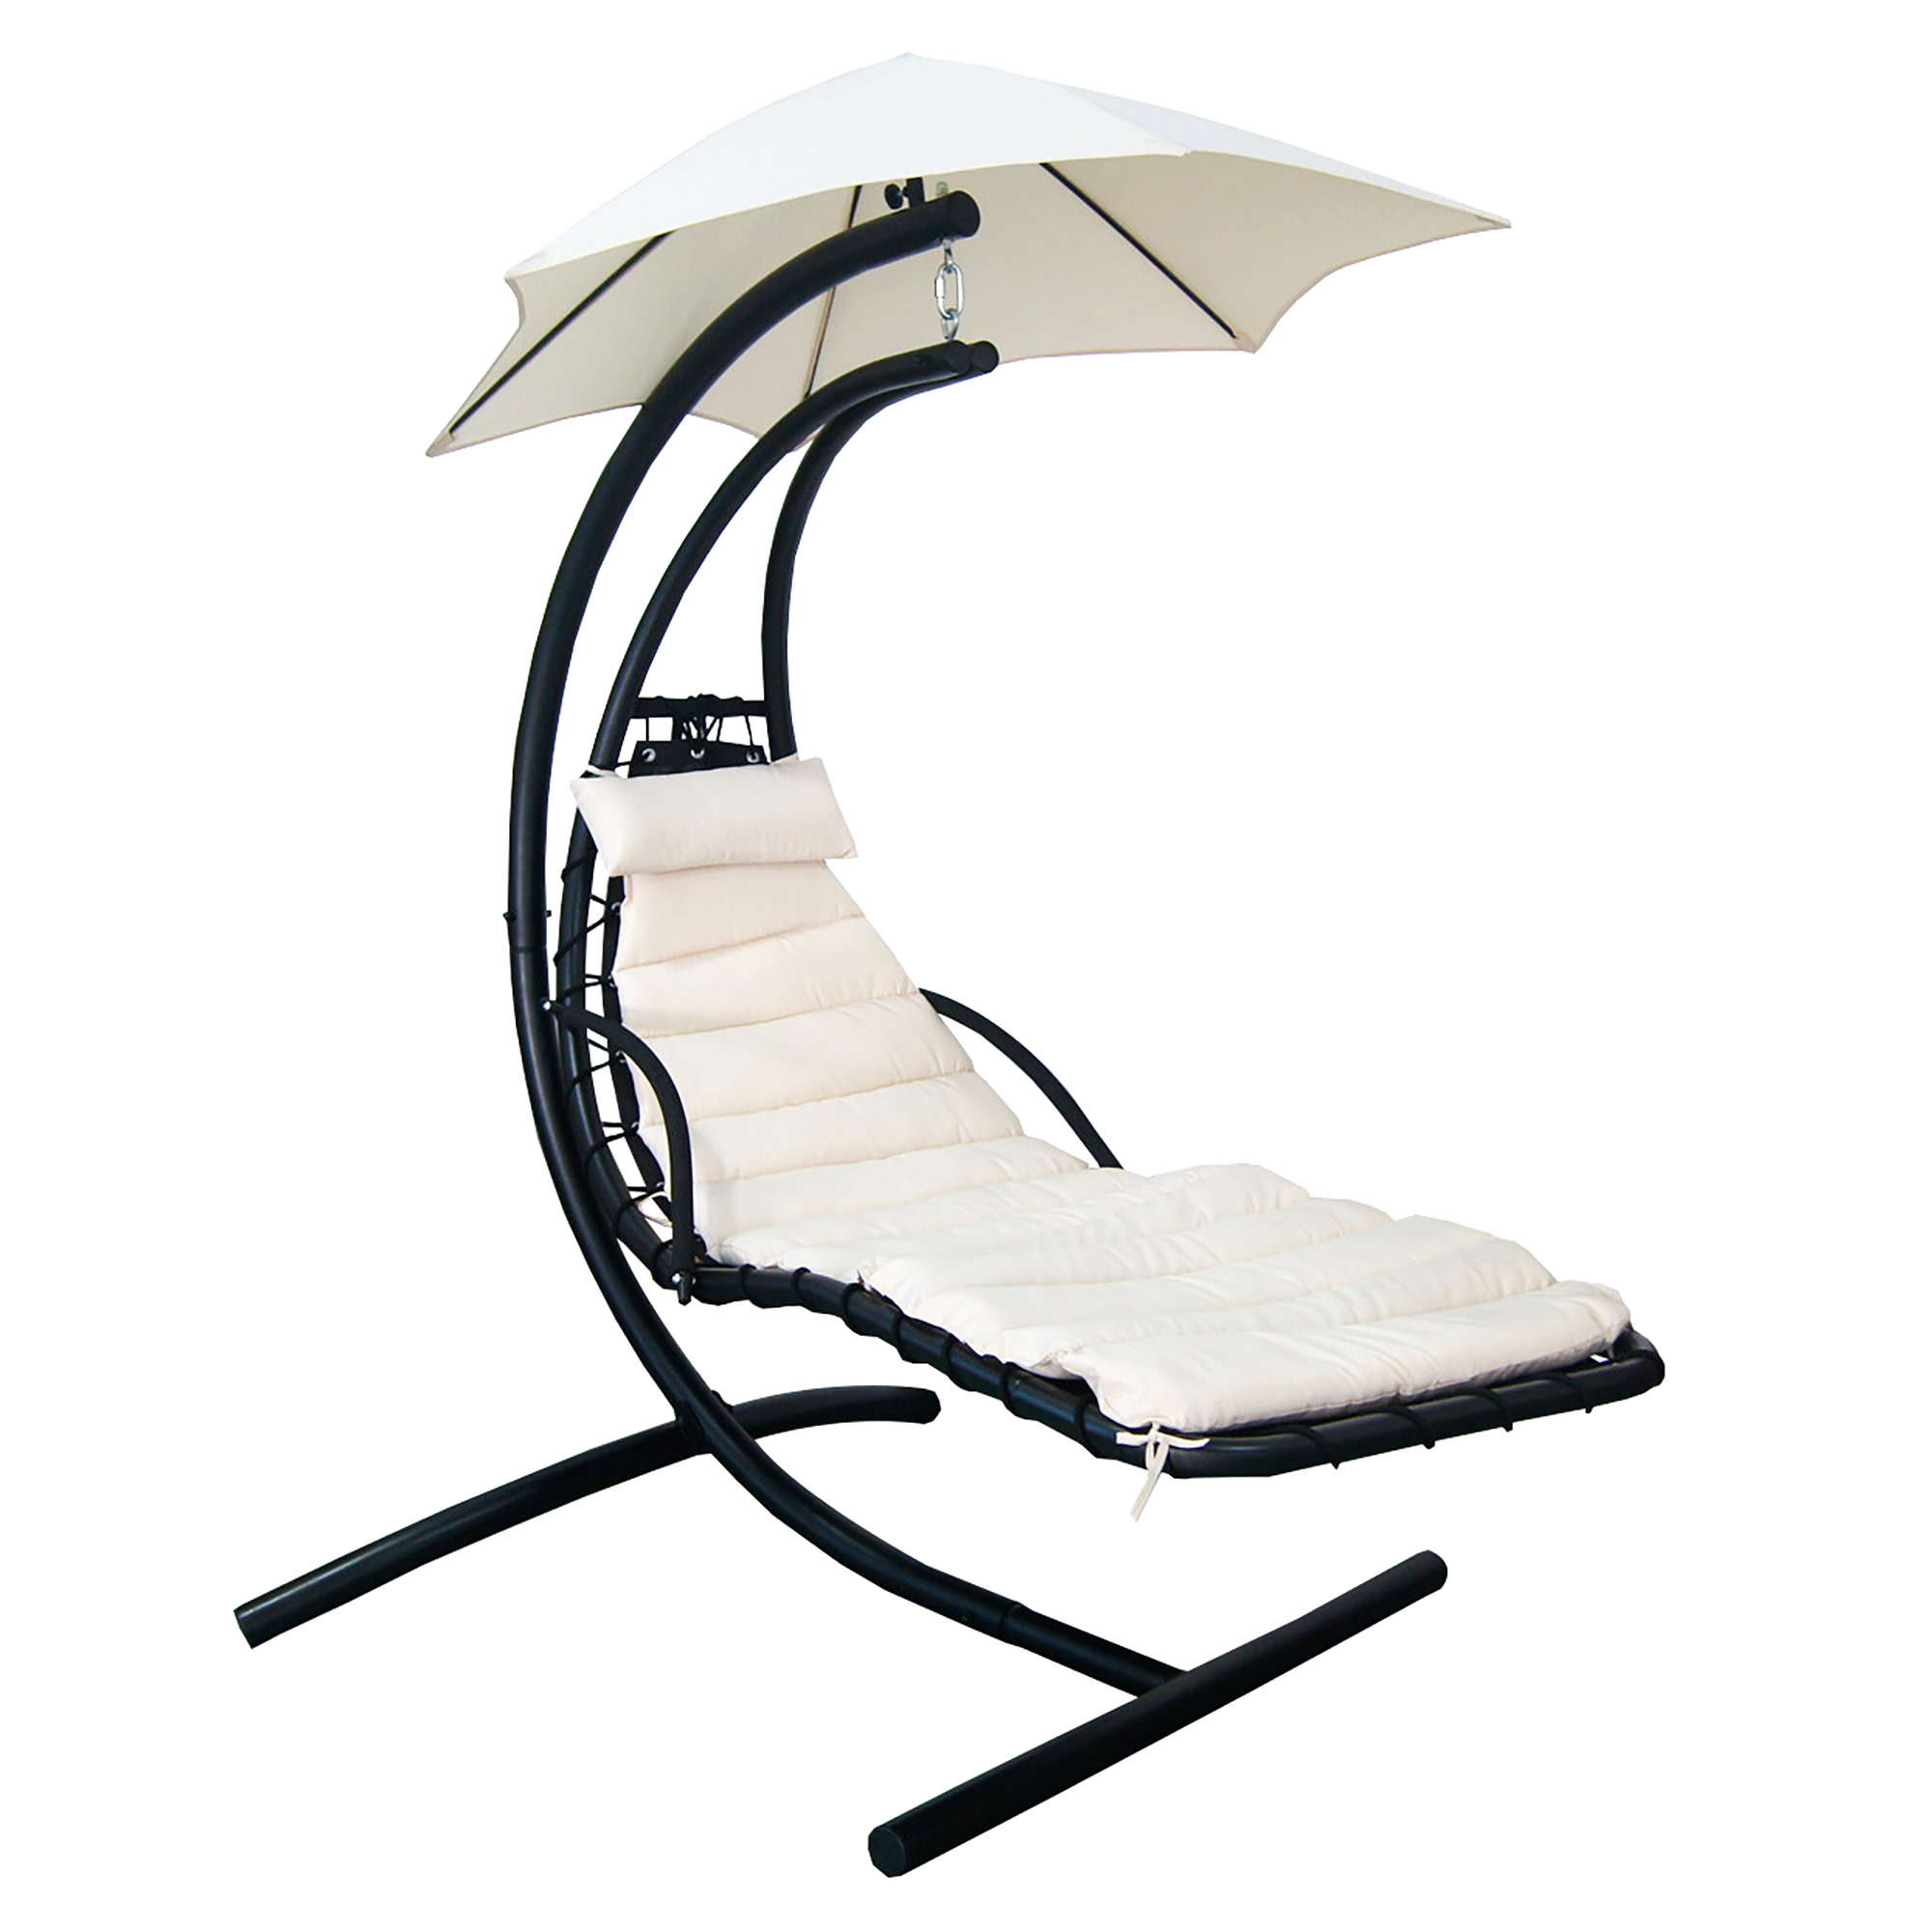 Island Umbrella Island Retreat Hanging Lounge w/ Shade Canopy in Canvas Beige